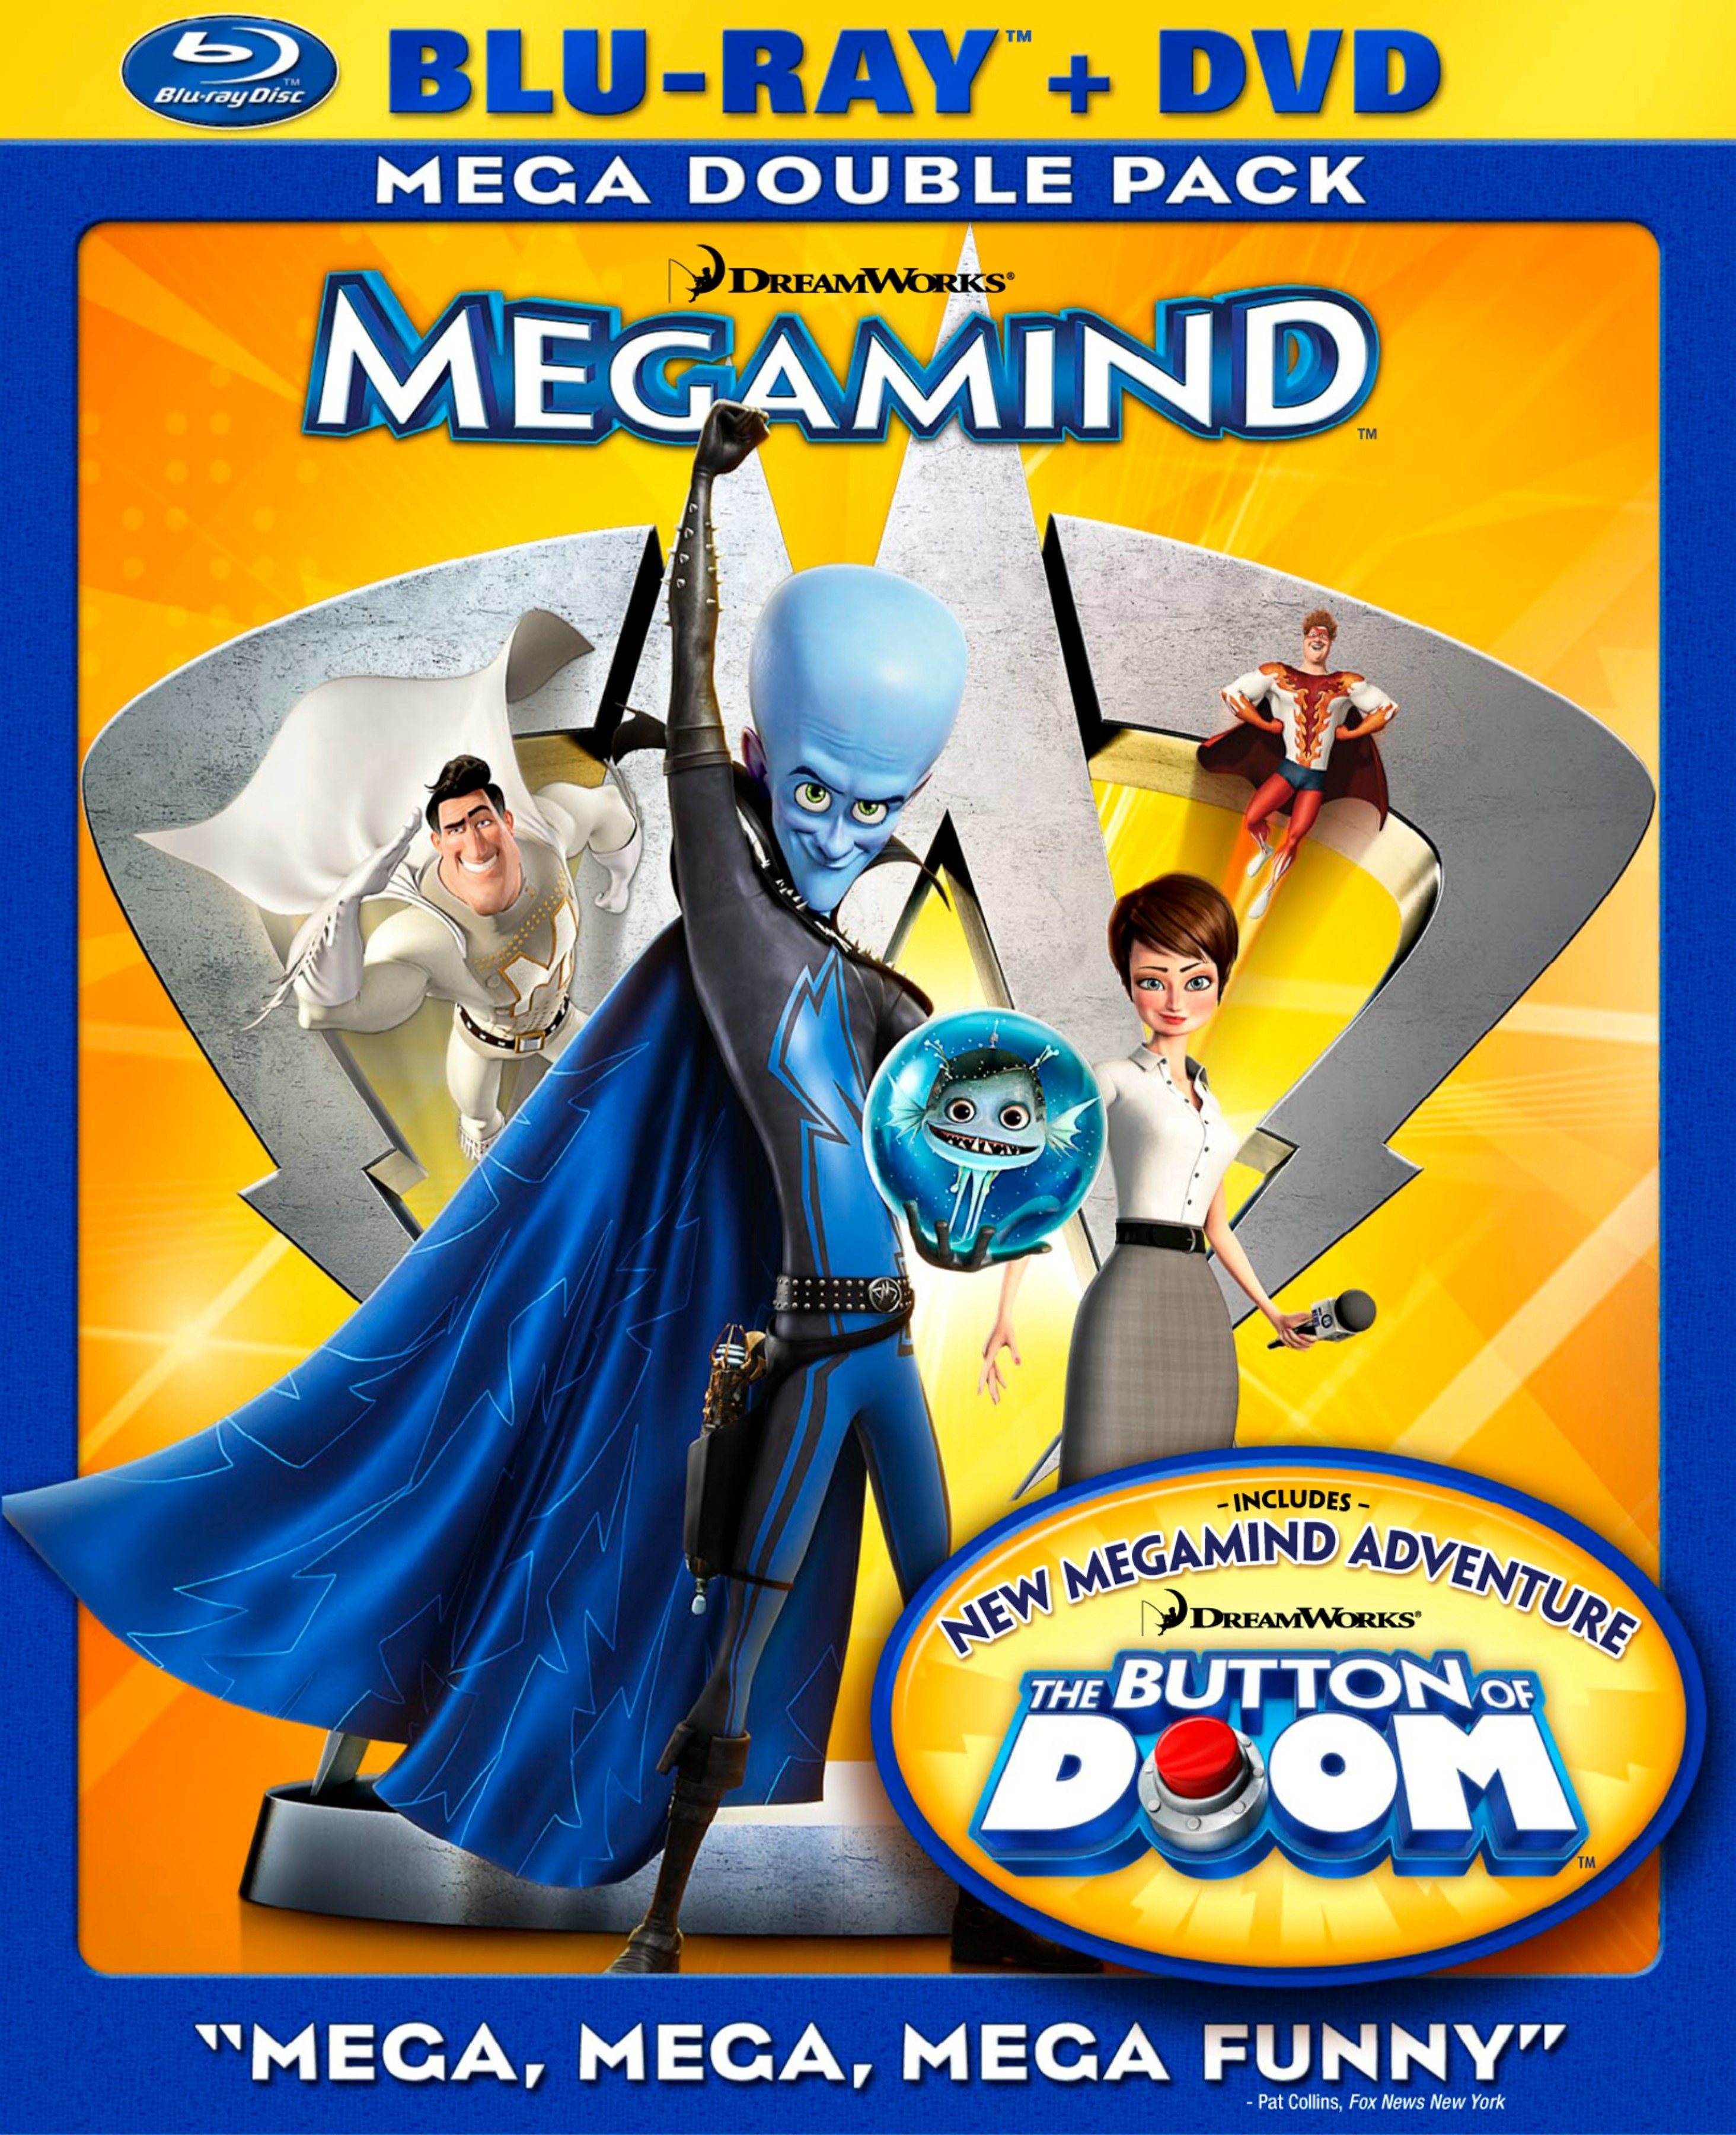 Megamind Blu-ray Cover